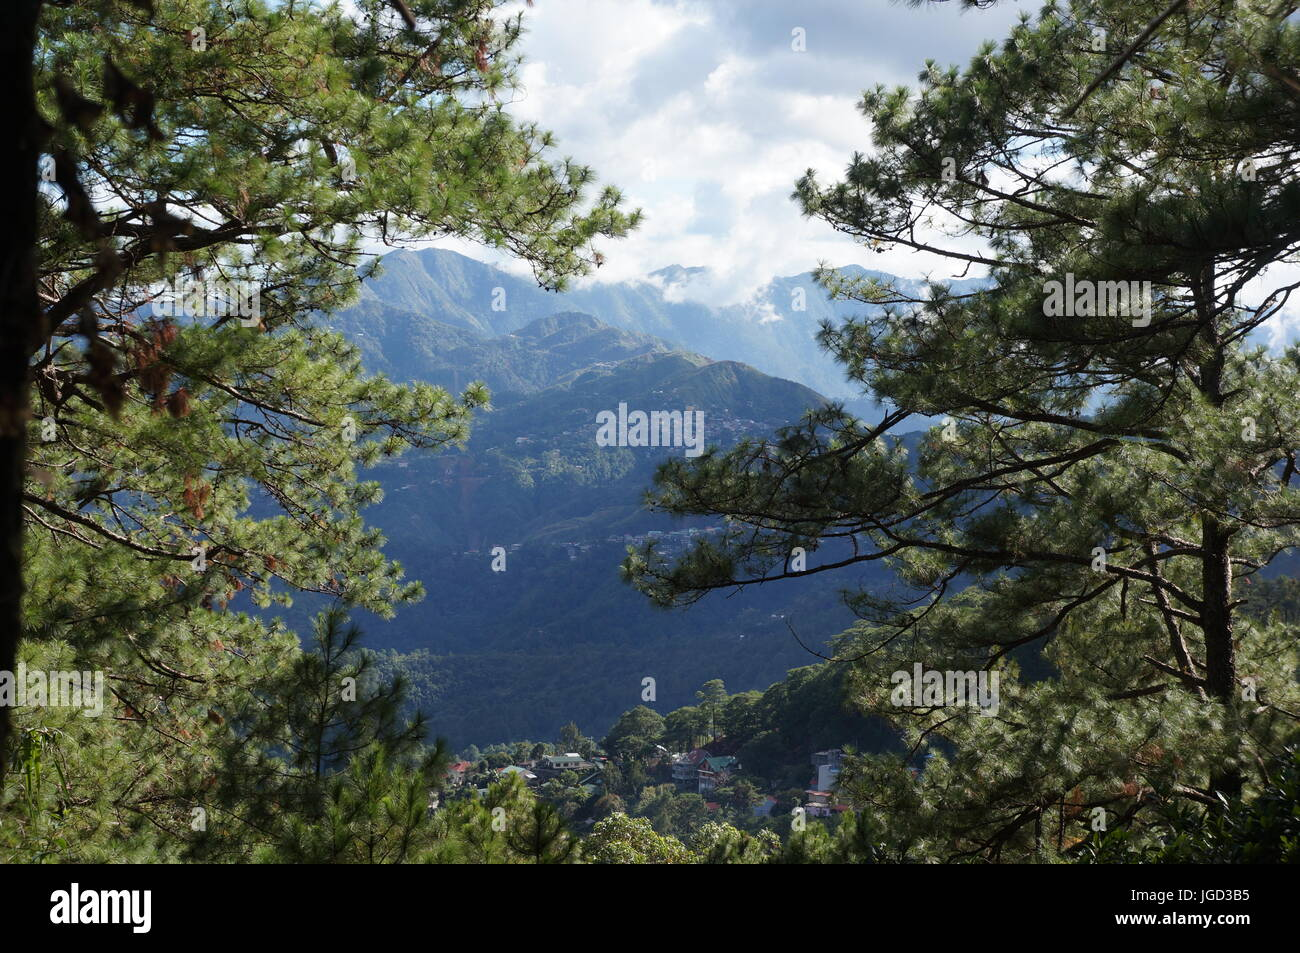 Mountain view background framed by green evergreen tree forest.  Mountains covered in tall trees and a cloudy sky. Stock Photo